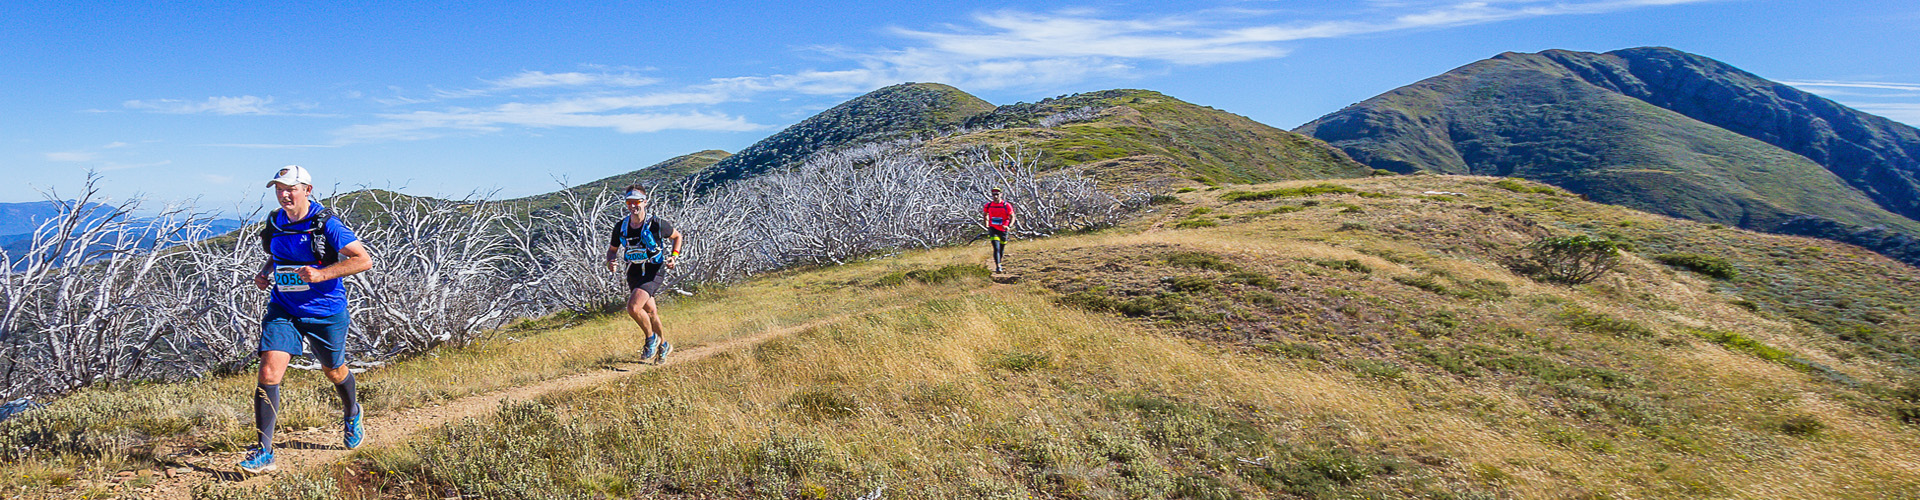 running wild trail running Hotham arrabri ski club